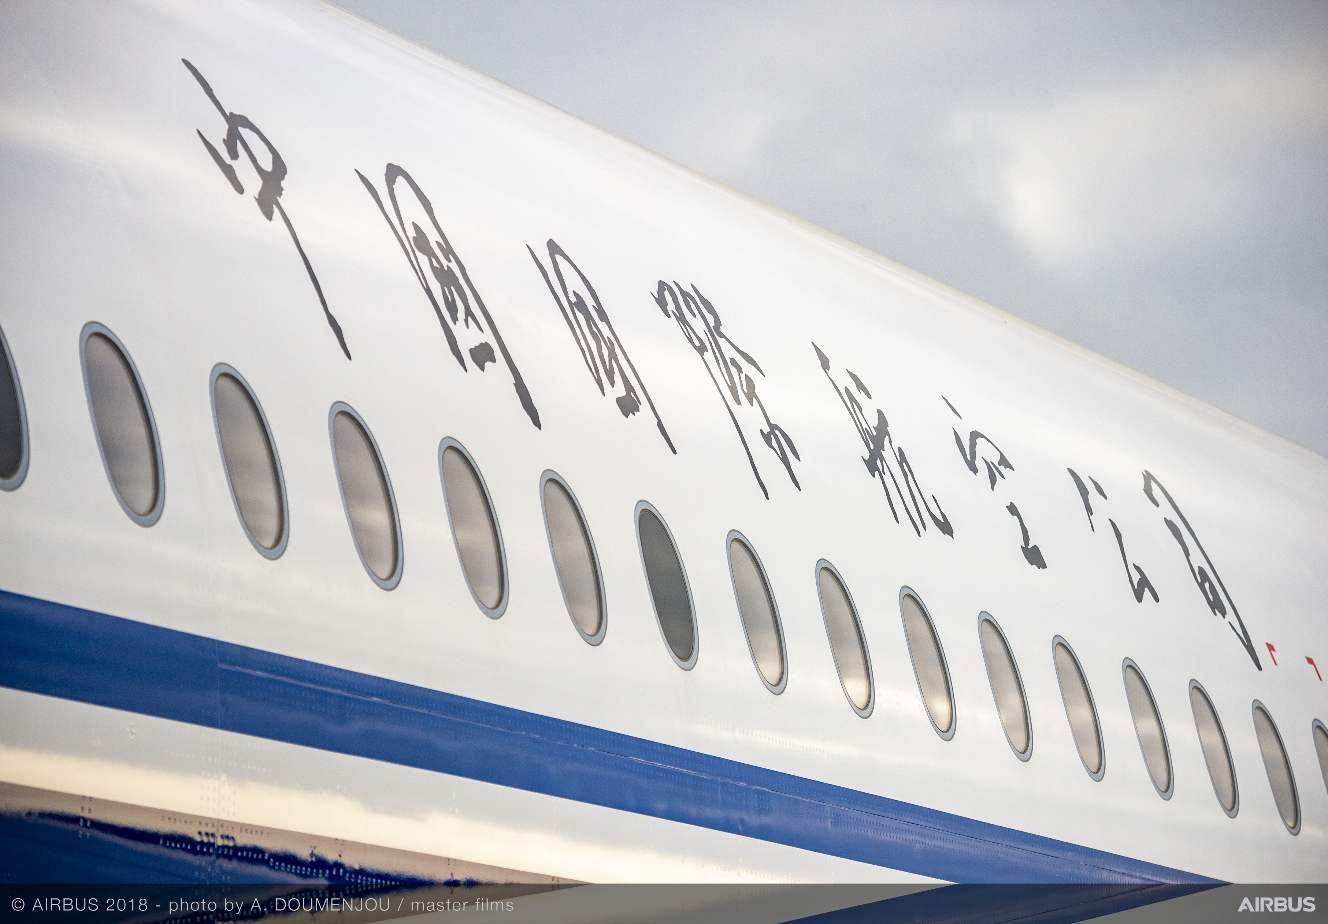 Chinese airports, airlines investing heavily in IT